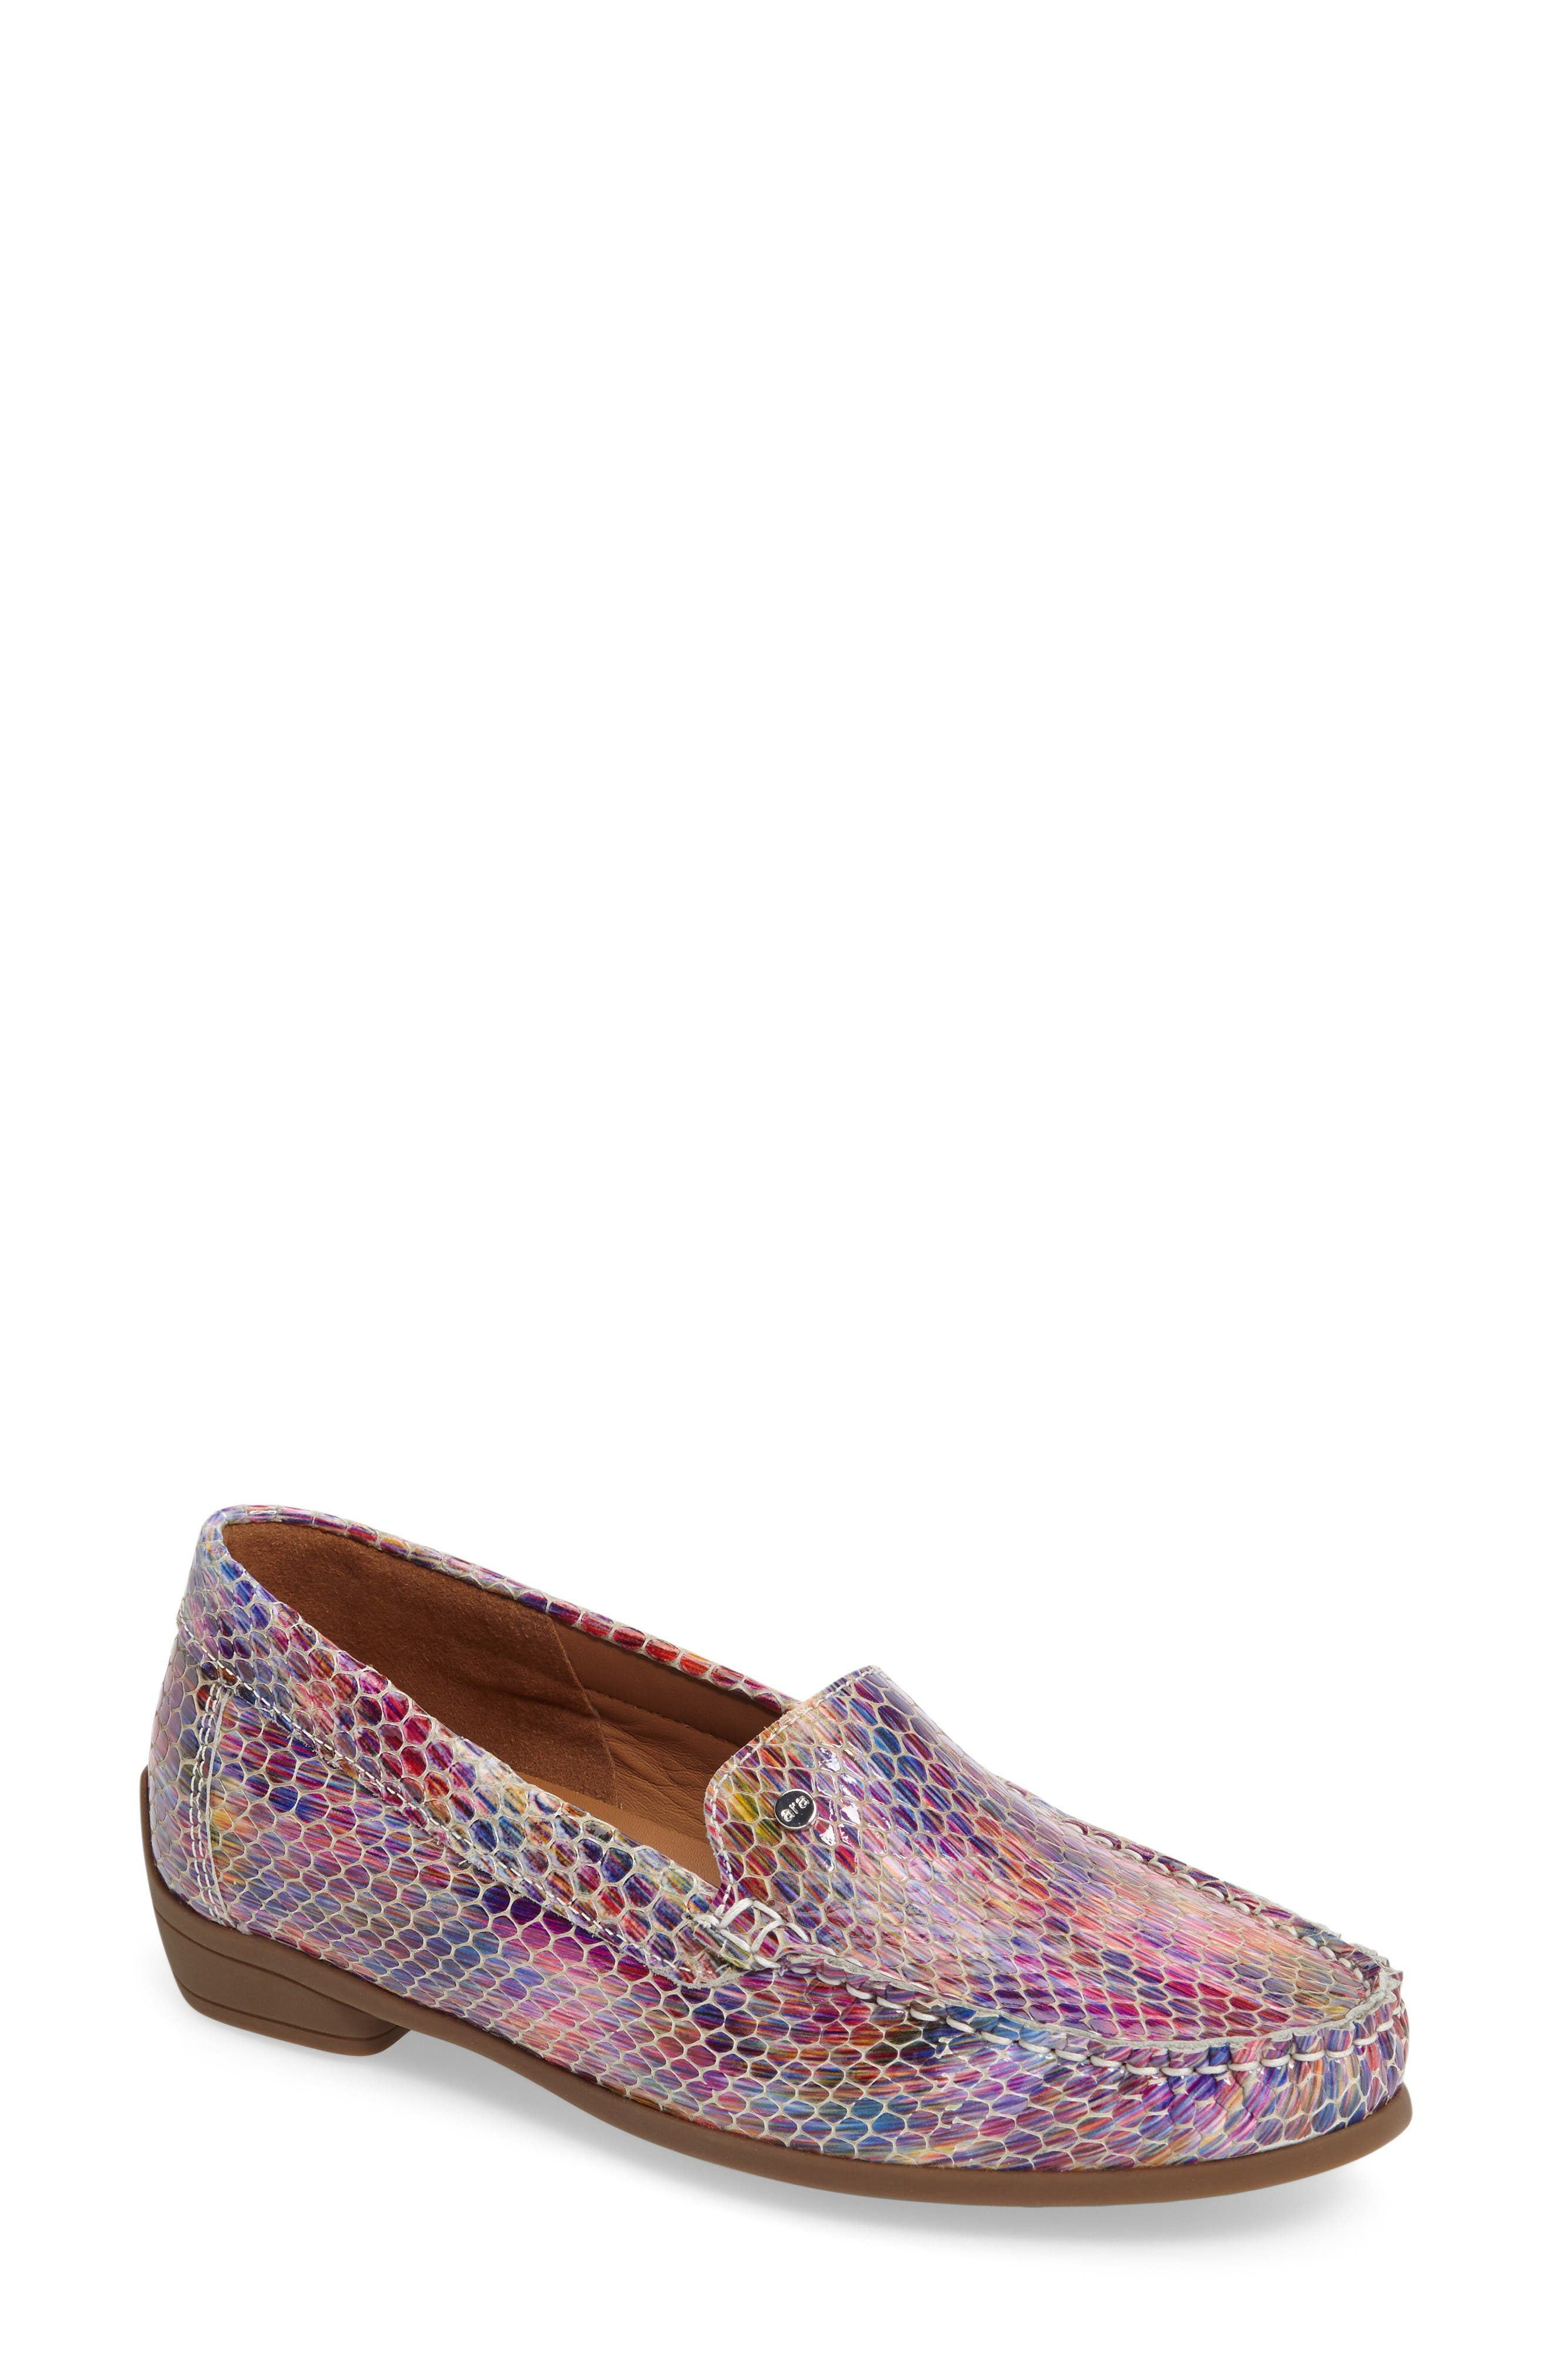 Barb Flat,                         Main,                         color, Pink Multi Leather